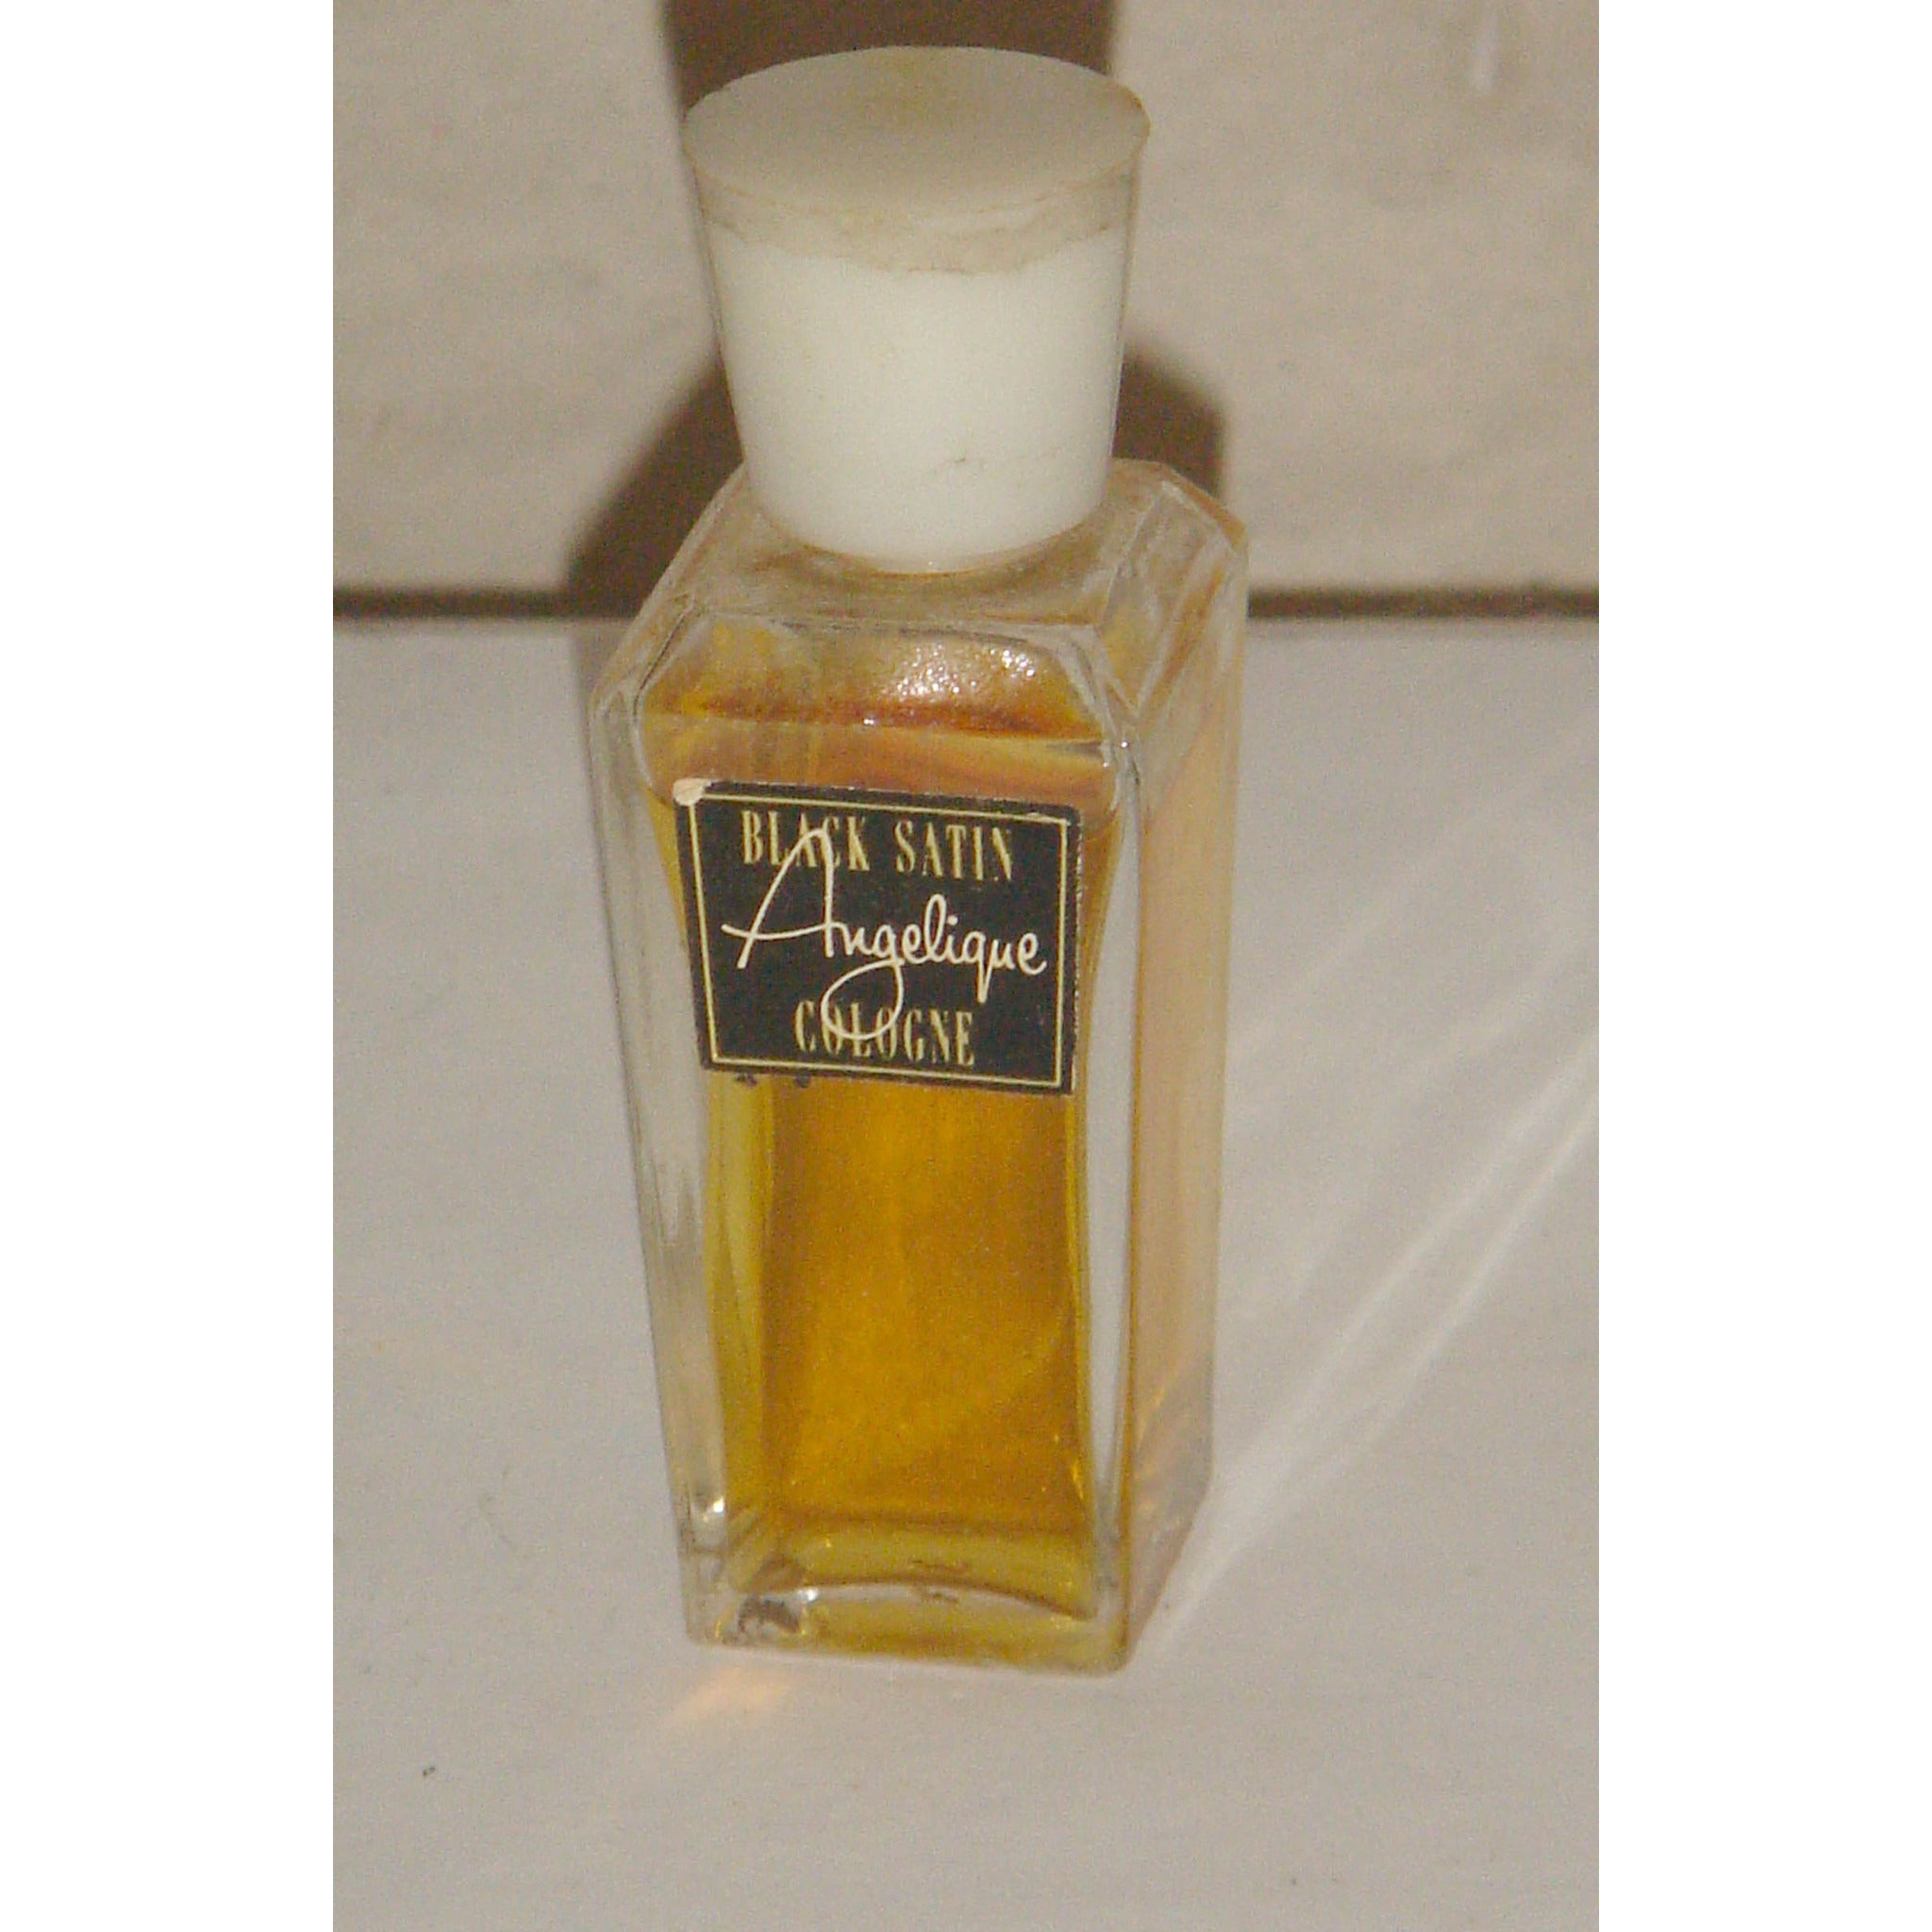 Angelique Black Satin Cologne